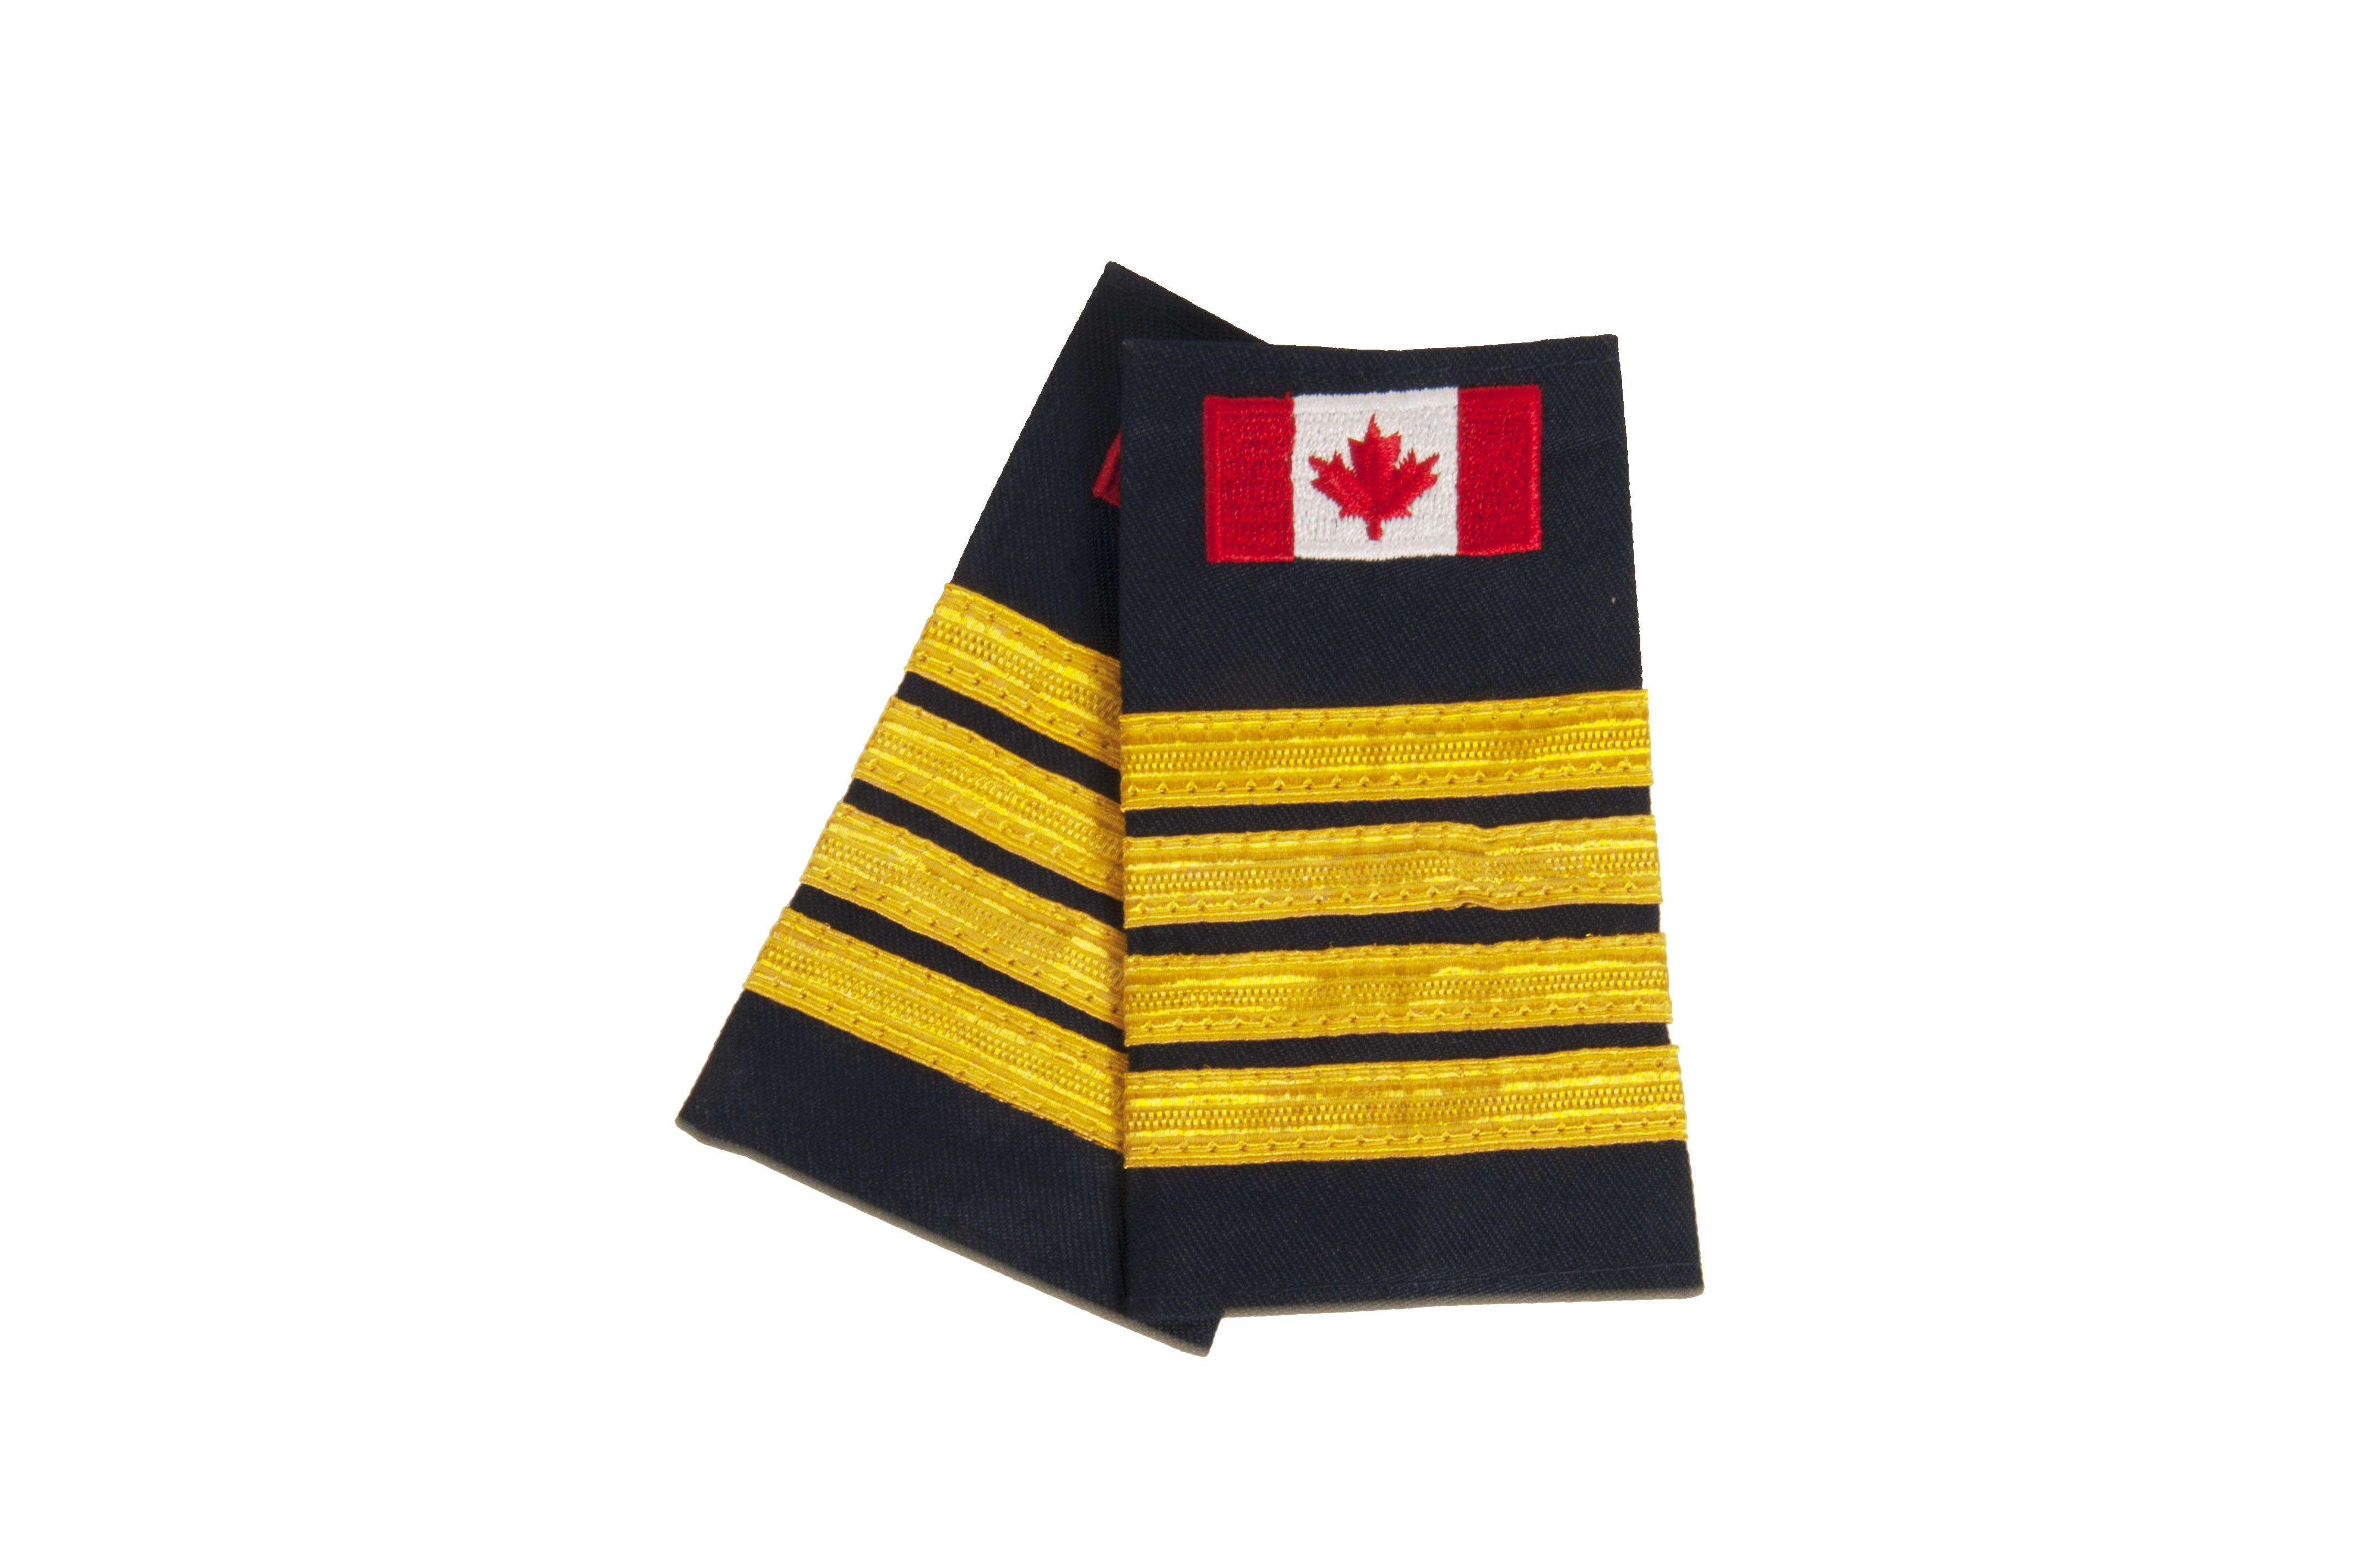 Deputy Chief Slip-On with Canadian Flag (No Text)